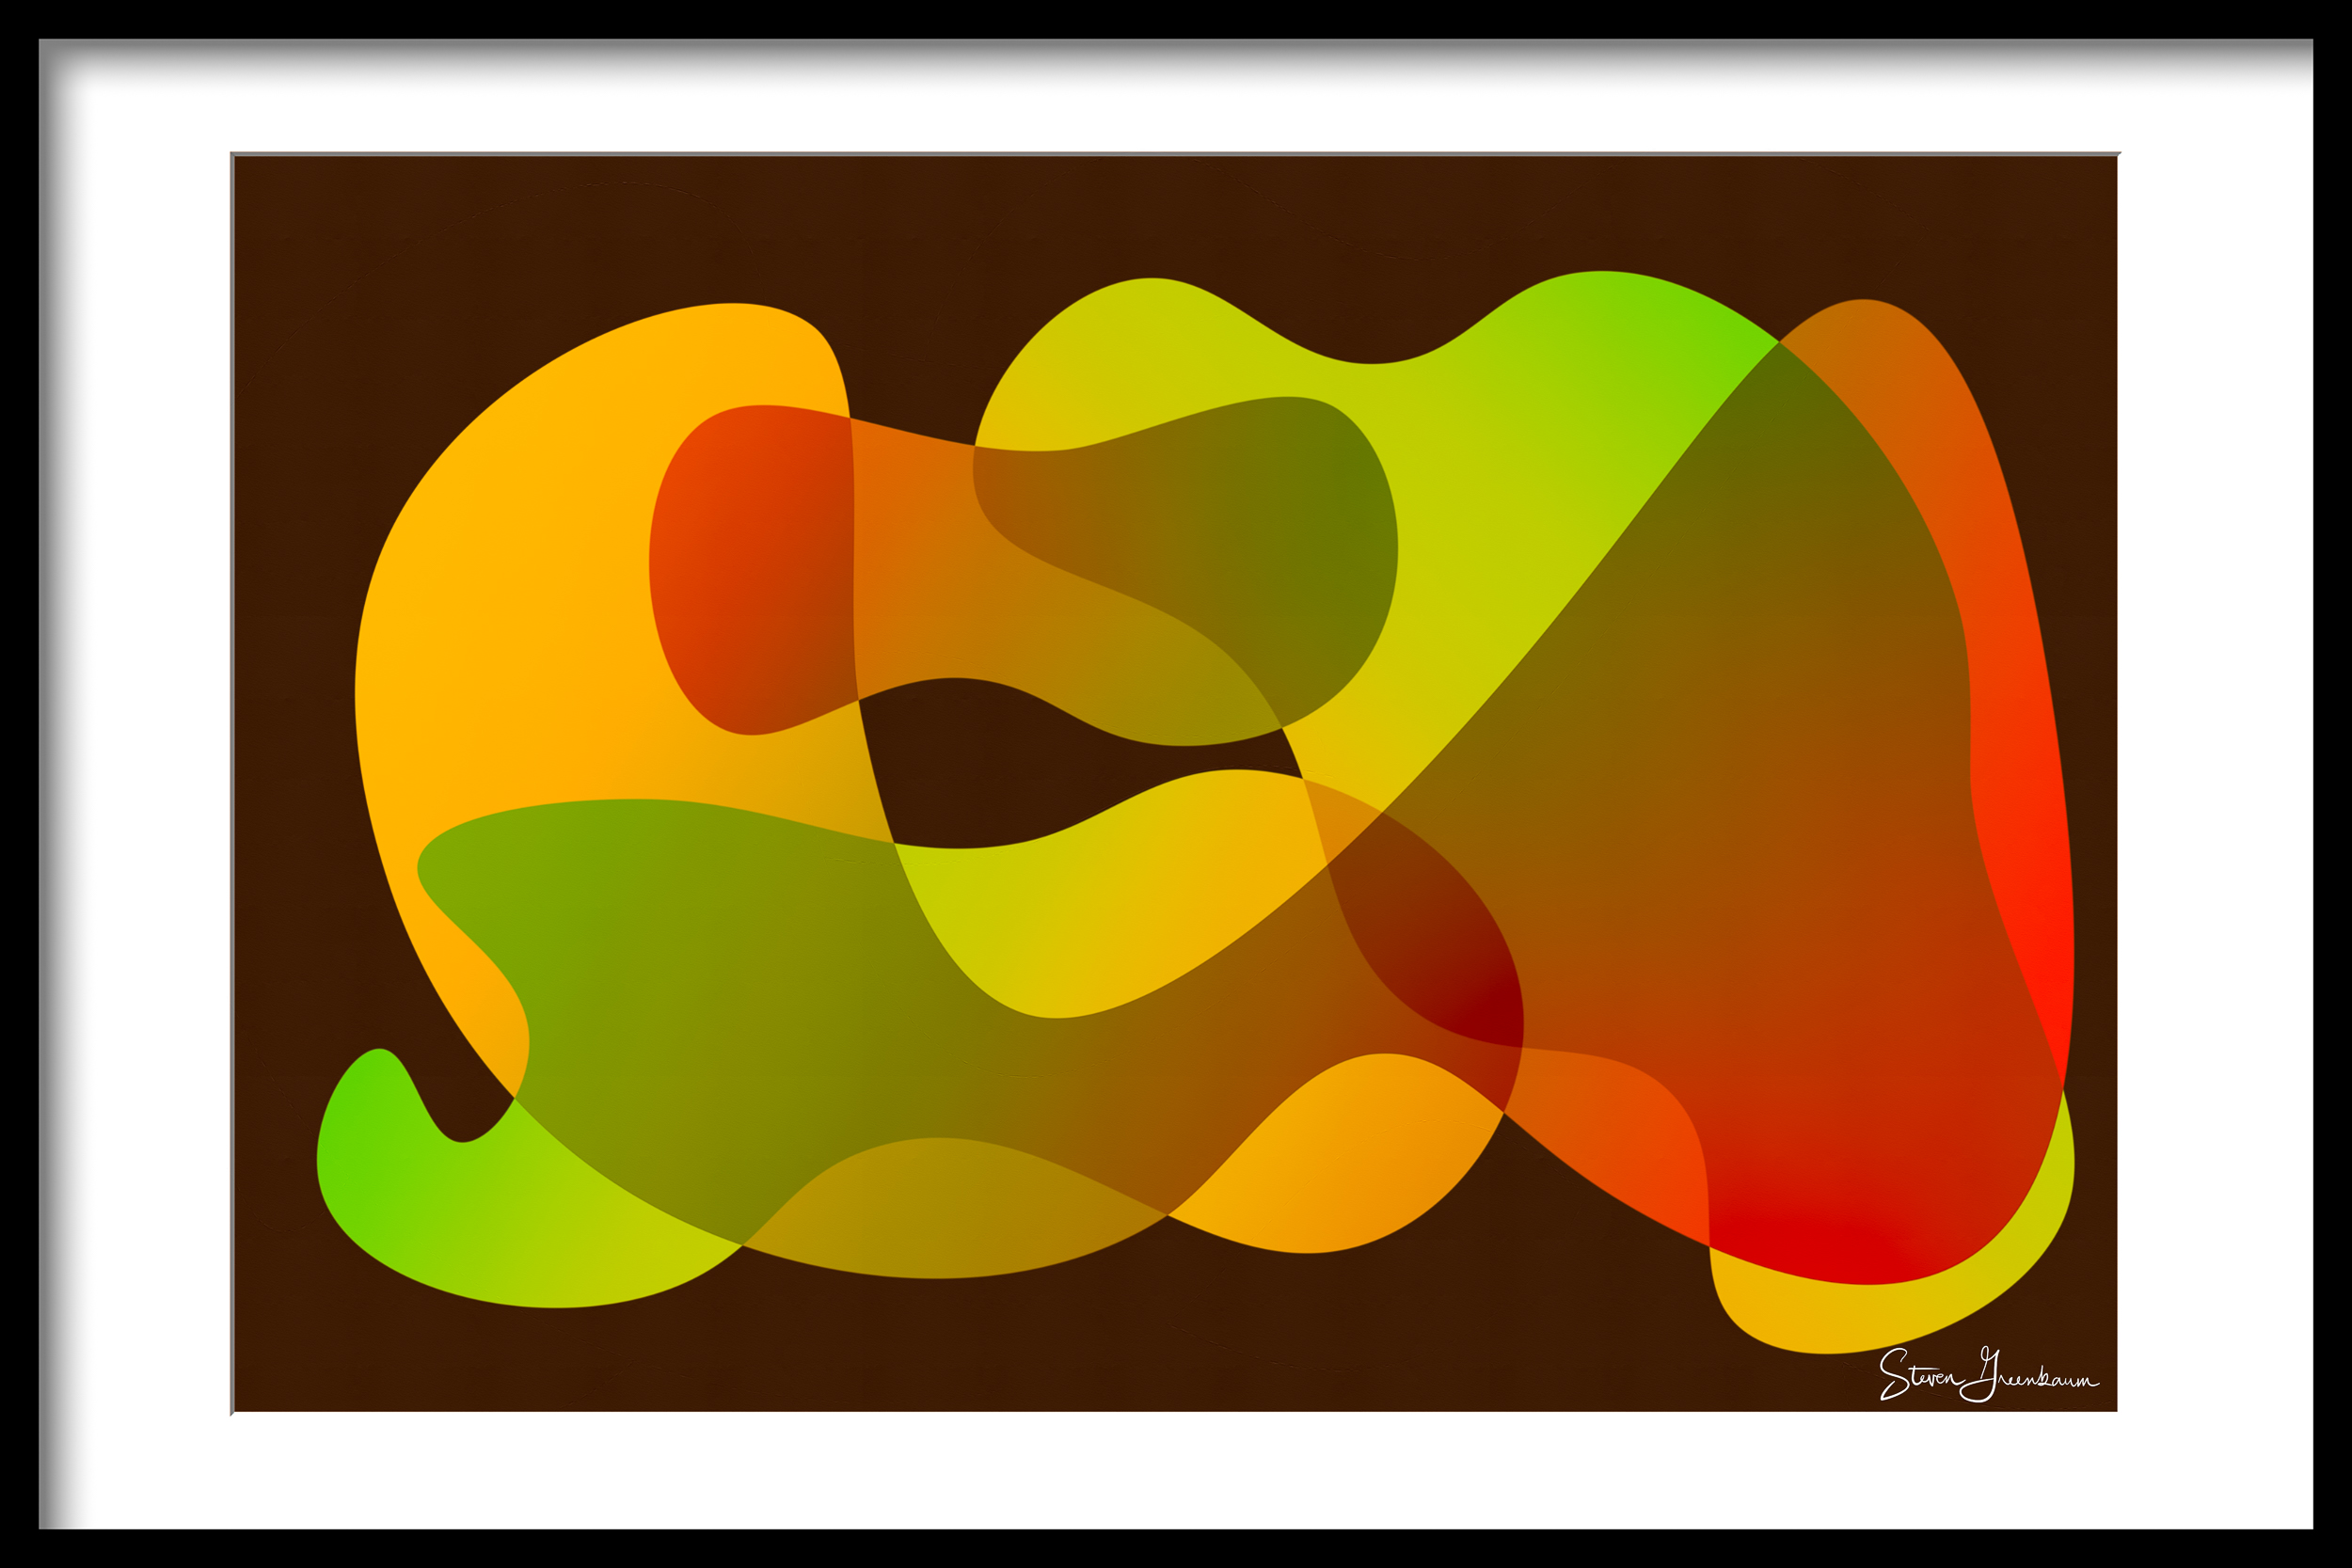 Shapes 1-dark brown background-naked.jpg